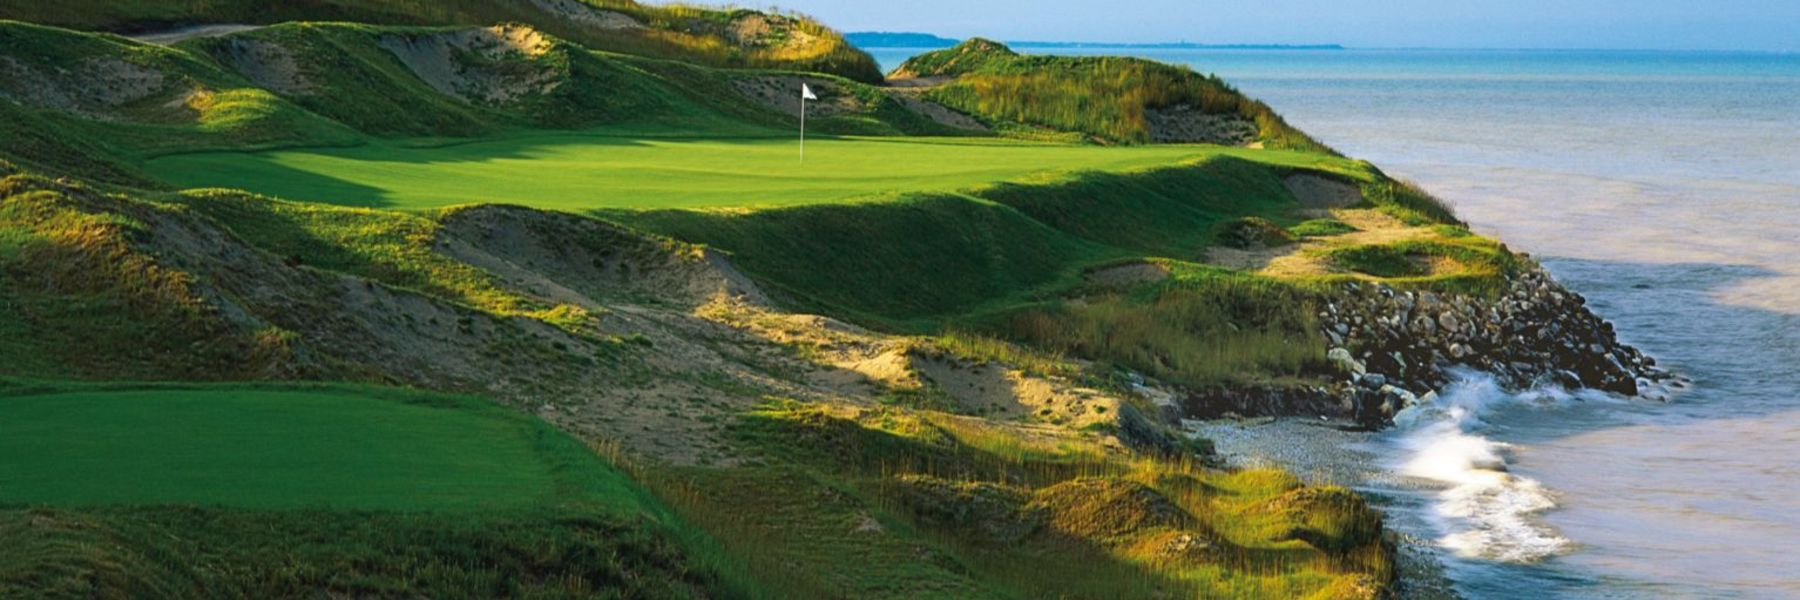 Golf Vacation Package - Whistling Straits Golf Club - Straits Course